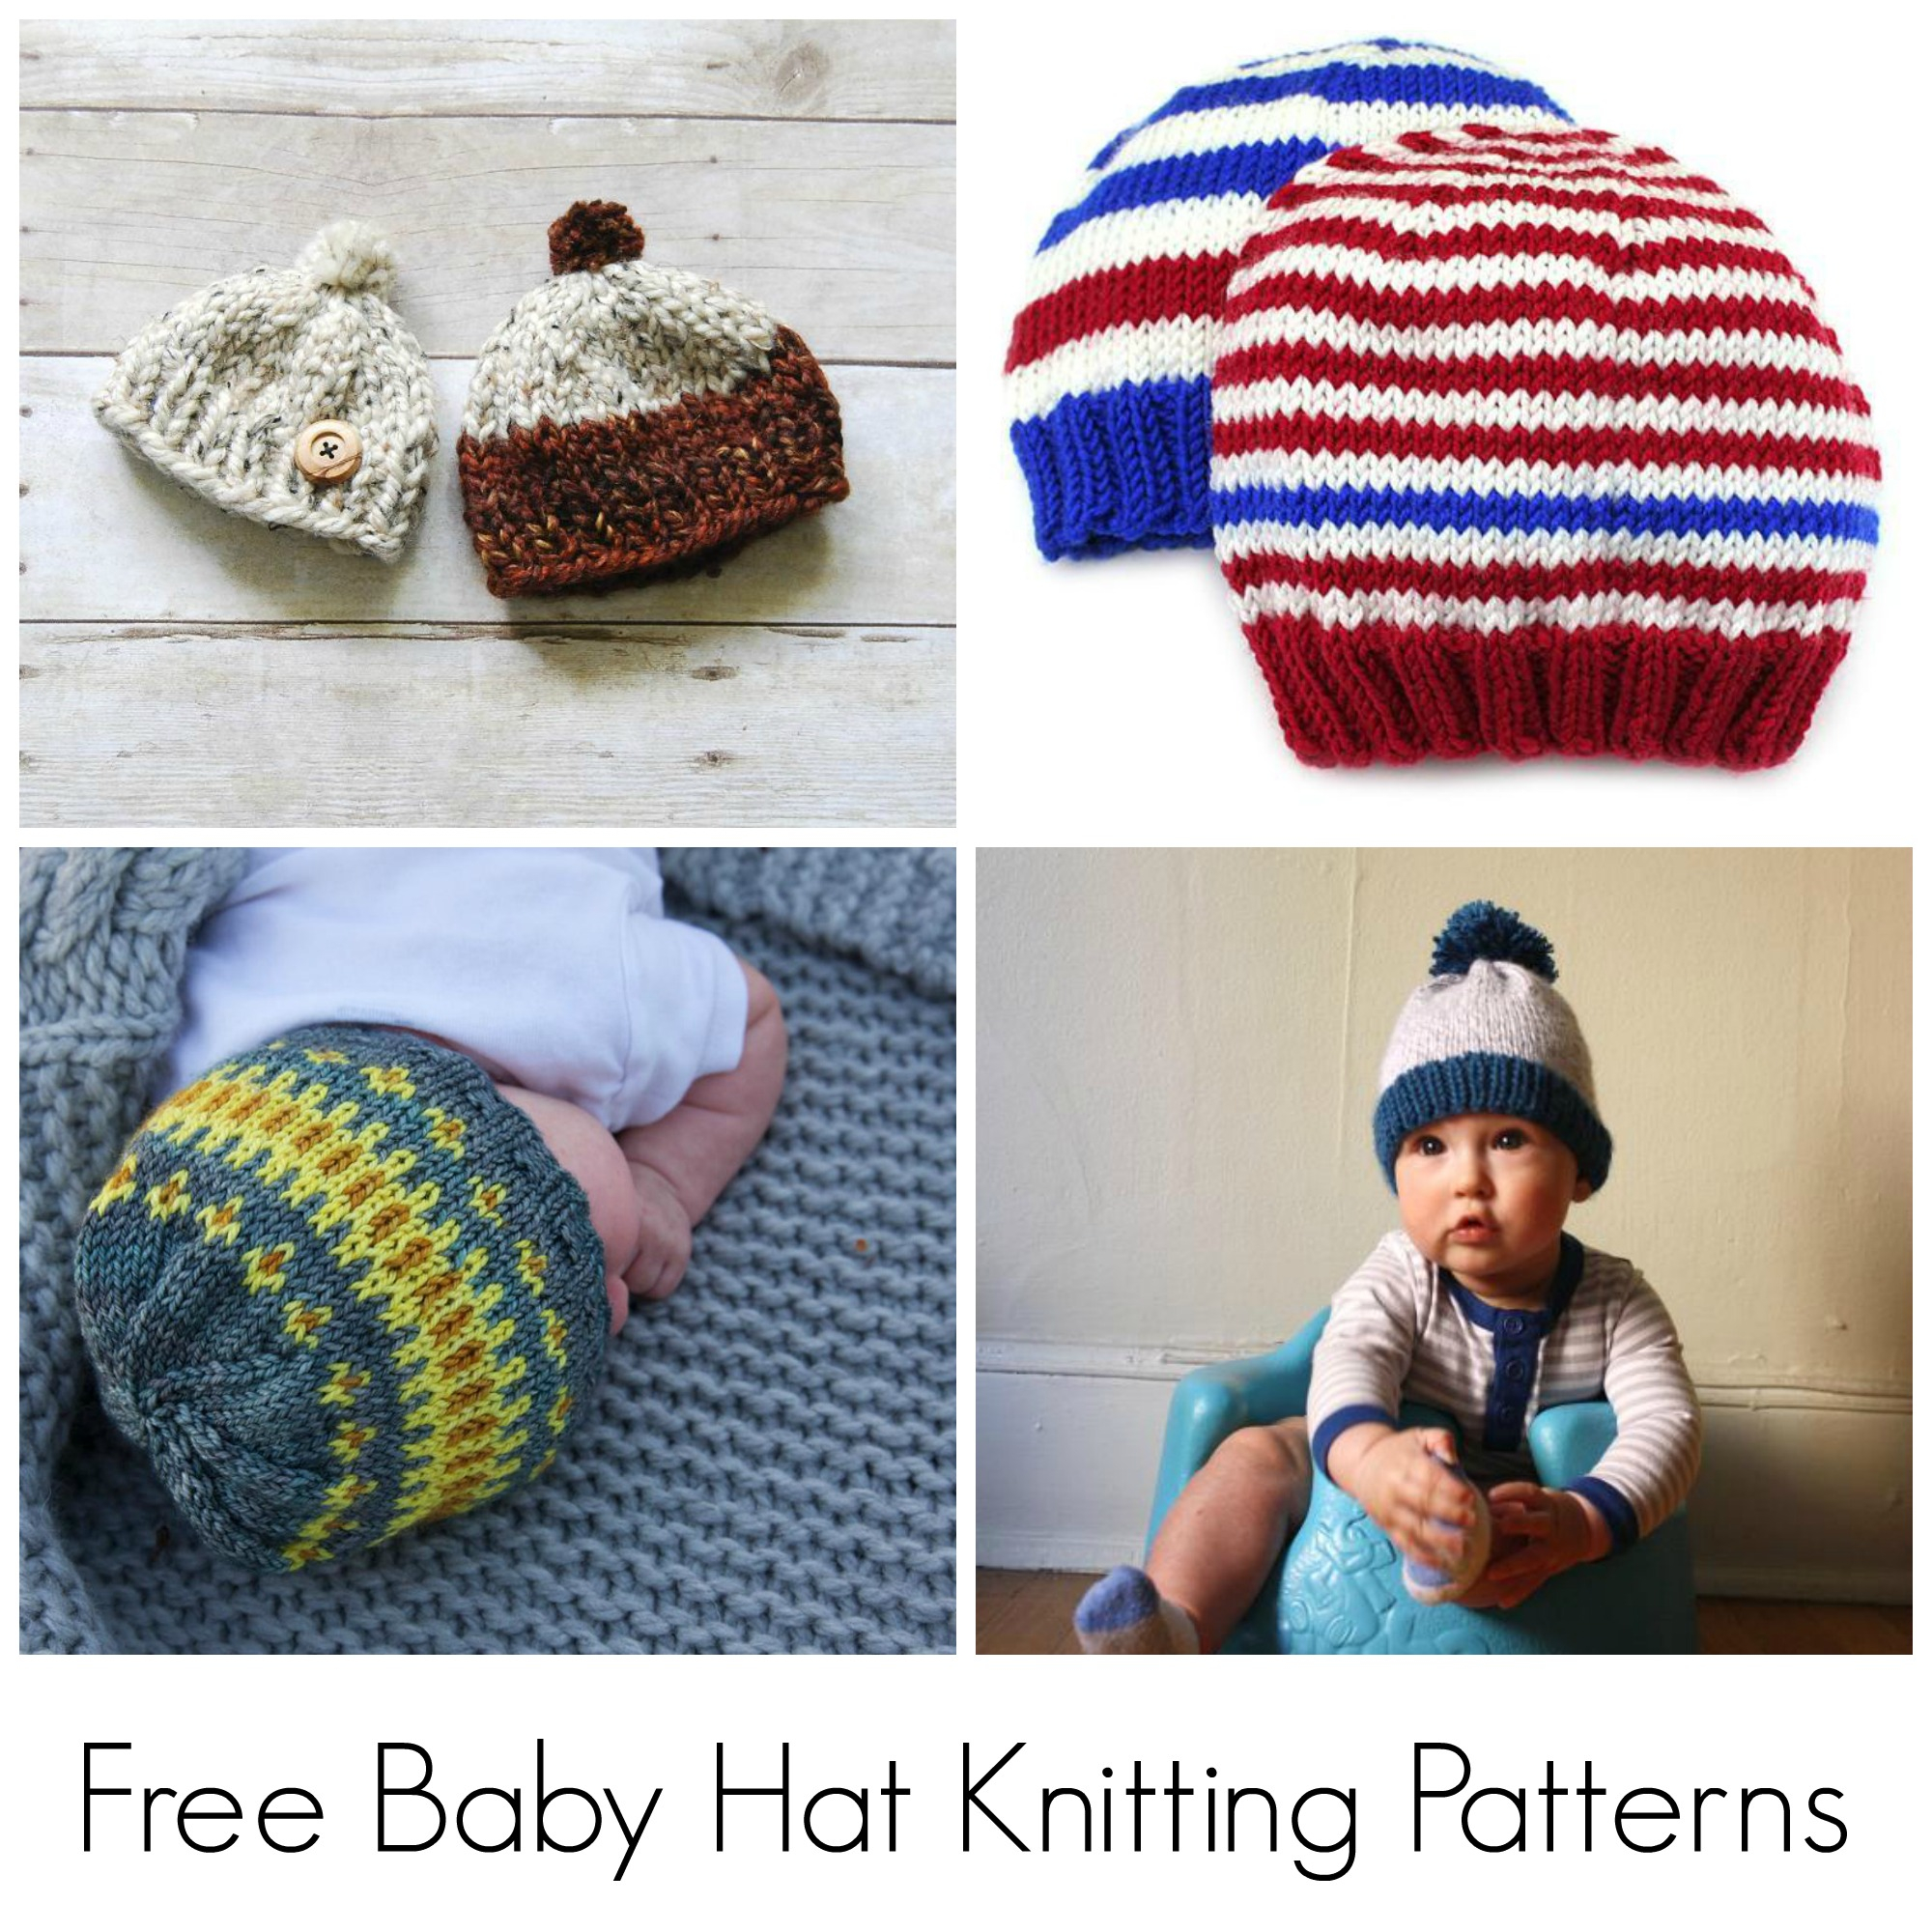 Baby Beanie Hat Knitting Pattern 10 Free Knitting Patterns For Ba Hats On Craftsy